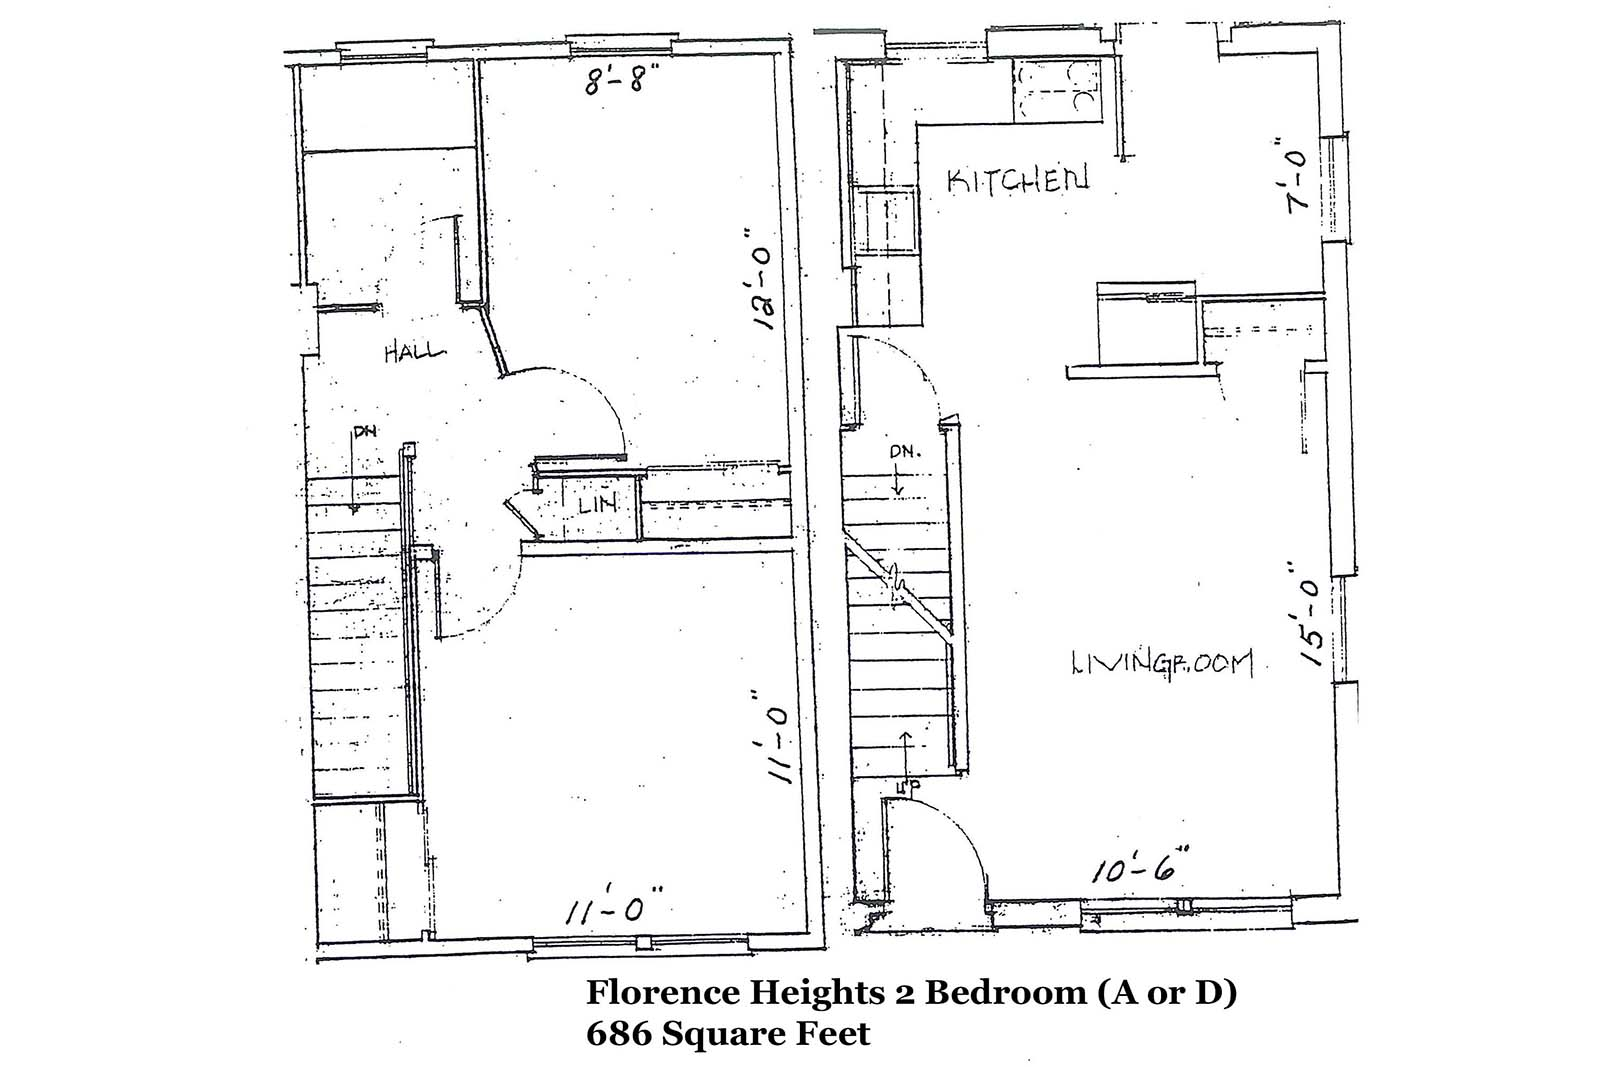 Florence Heights 3 Bedroom layout